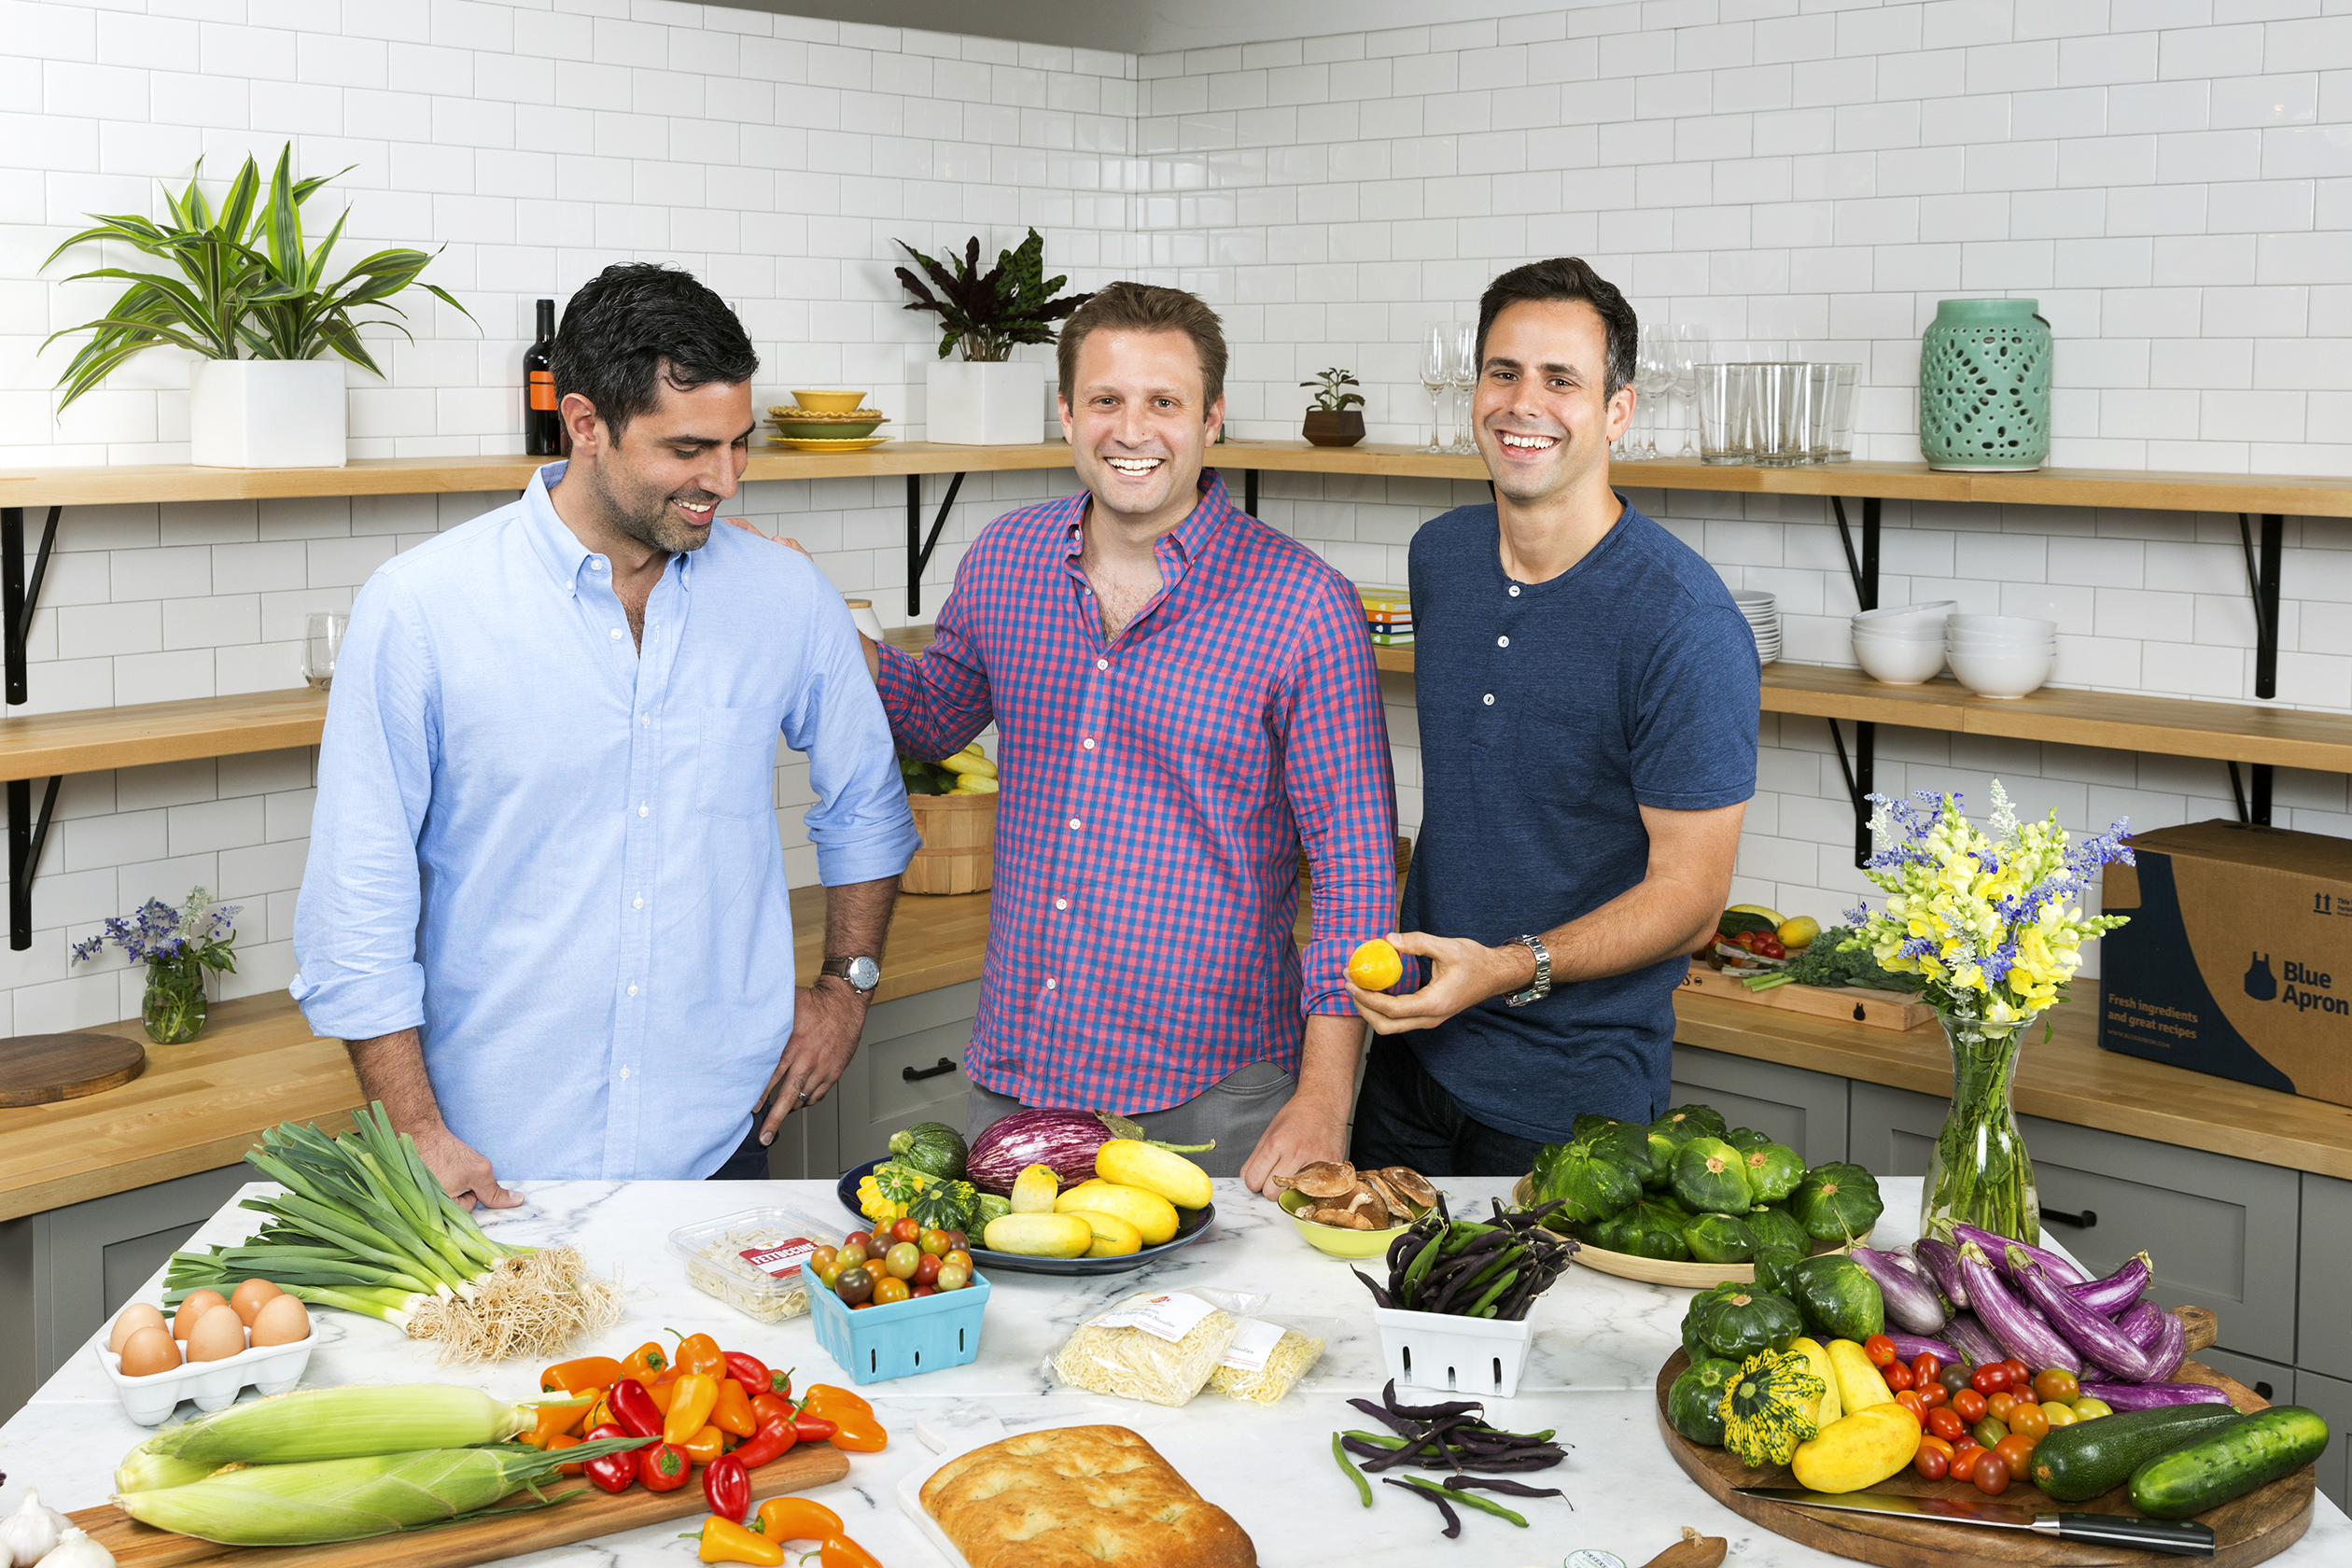 Too many cooks? Cofounders (from left) Papas, Salzberg, and Wadiak bring unique skills to perfect the Blue Apron recipe.